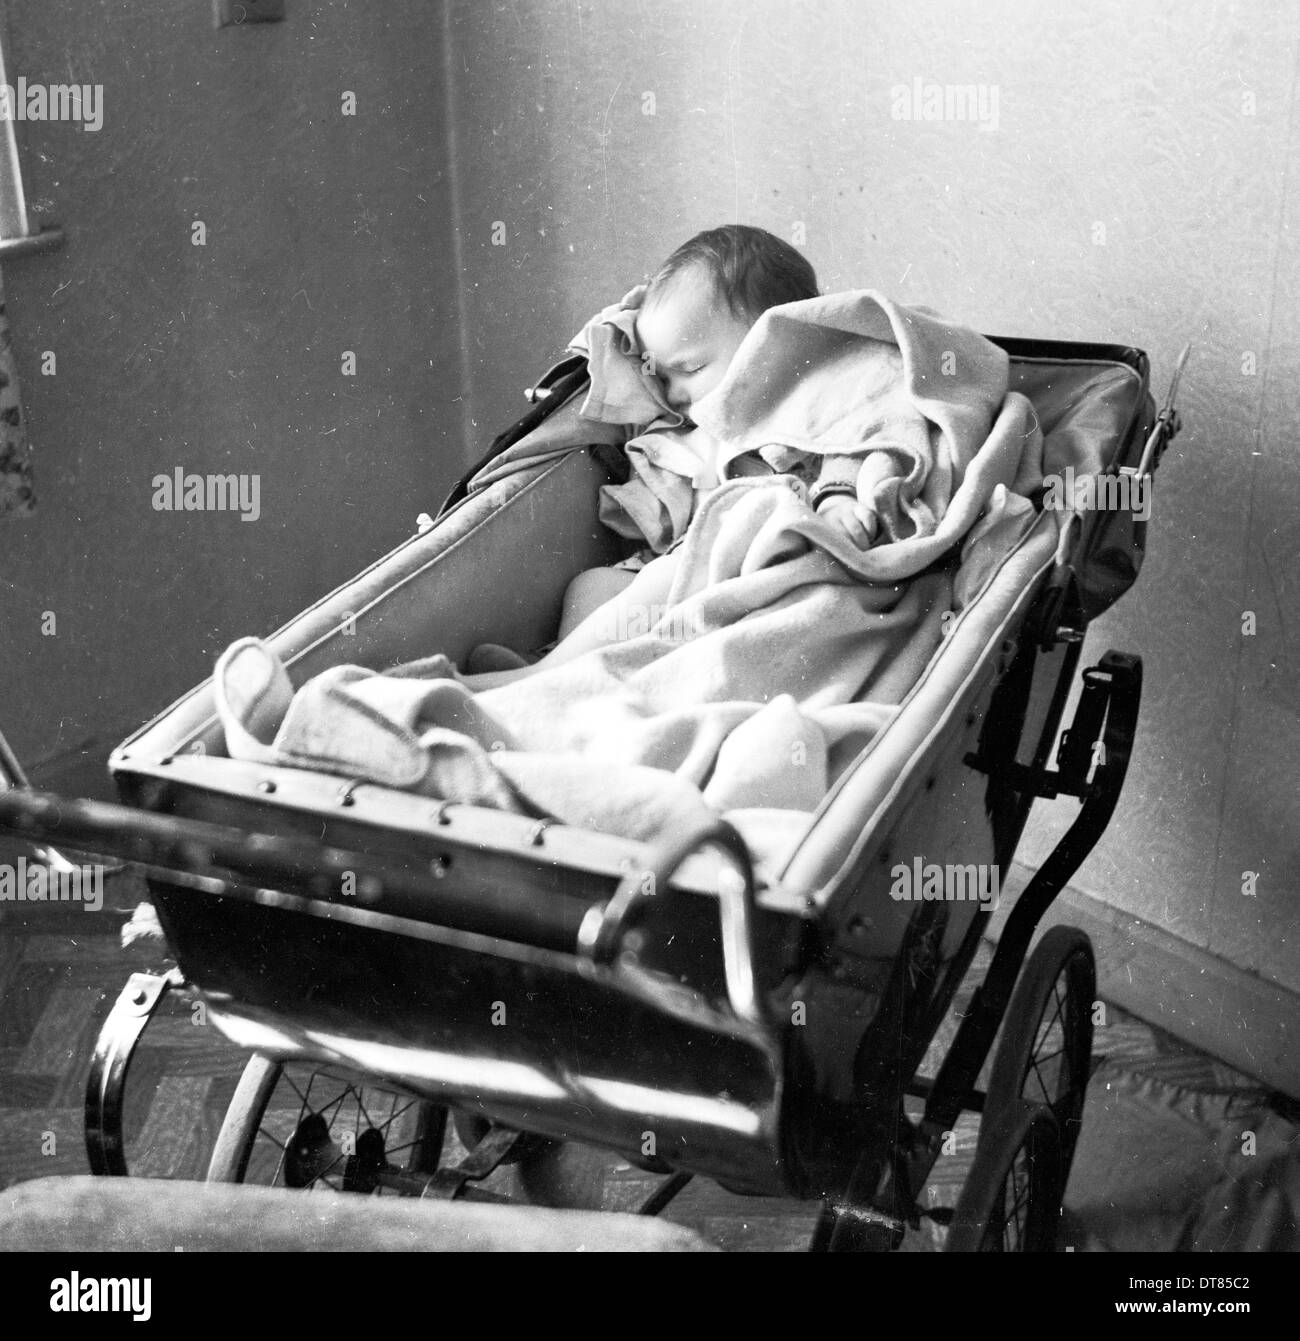 Historical Picture From 1950s Showing A Sleeping Baby In Her Pram